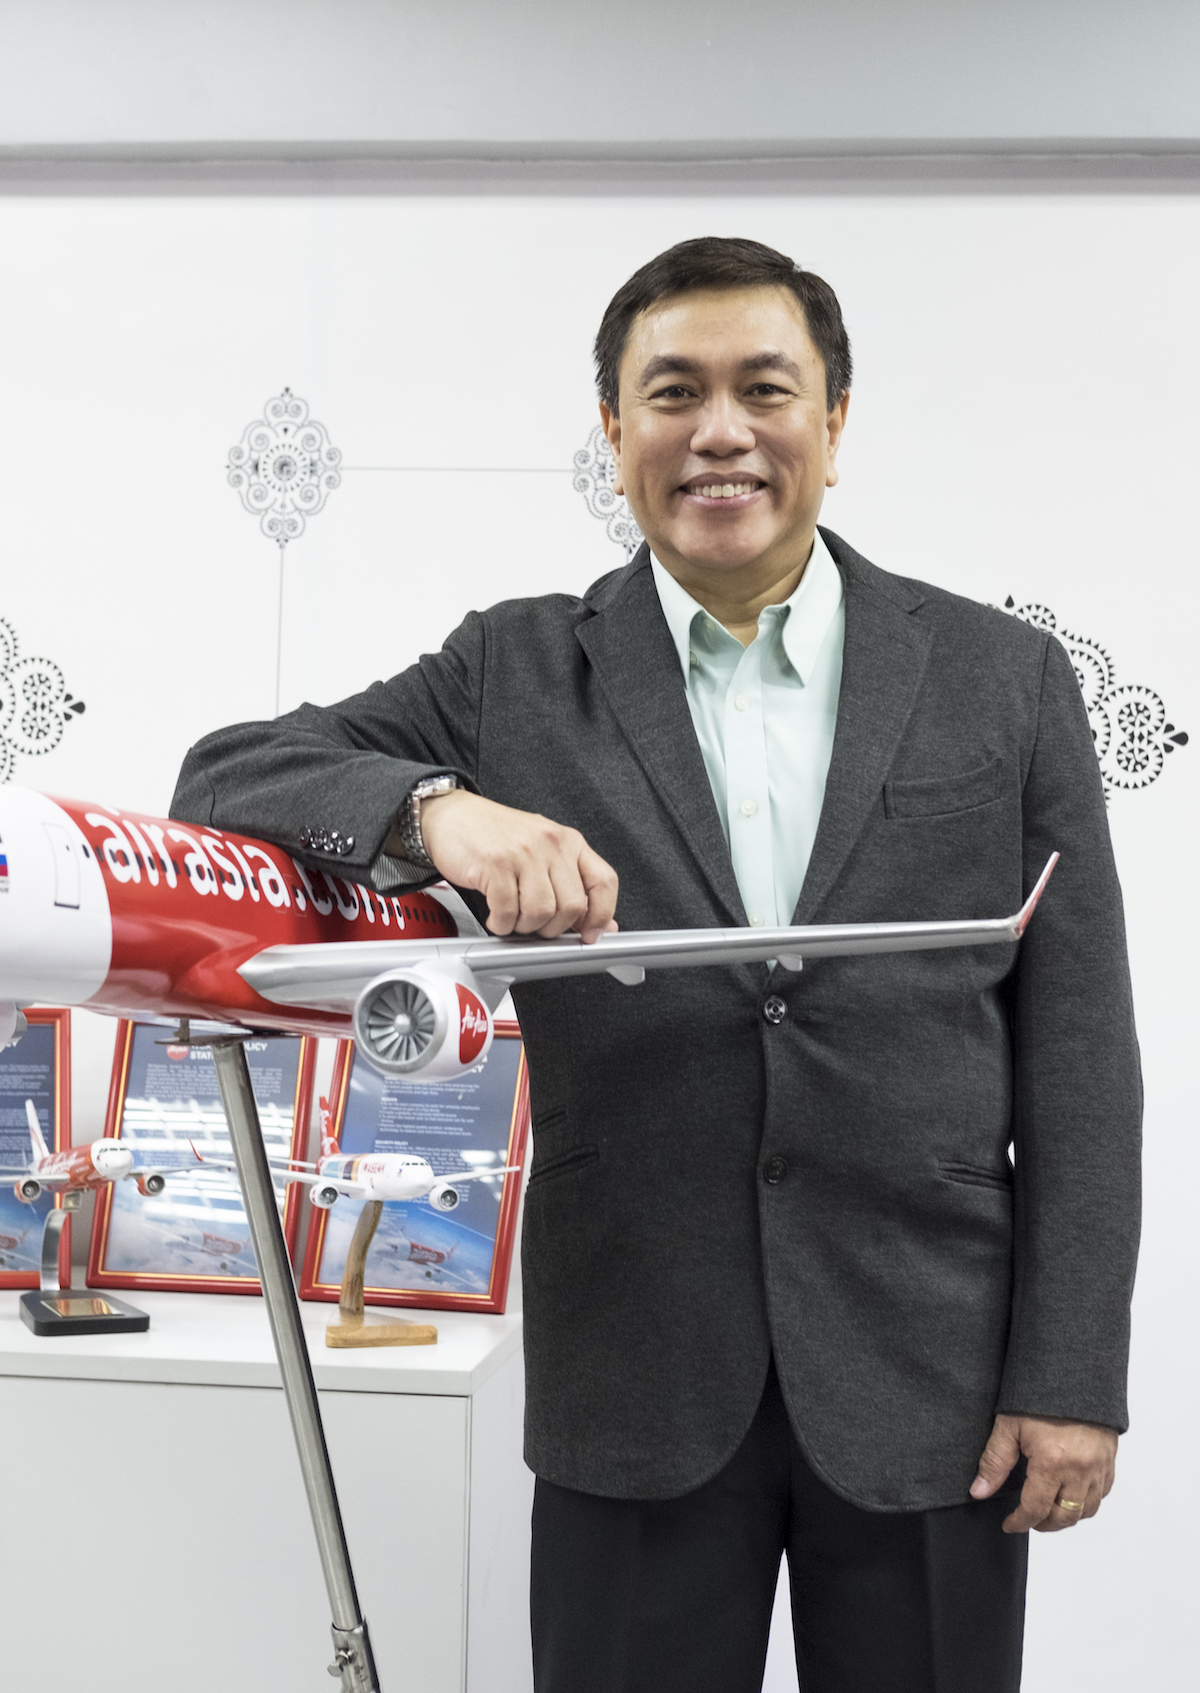 Dexter Comendador, President and CEO of Philippines AirAsia